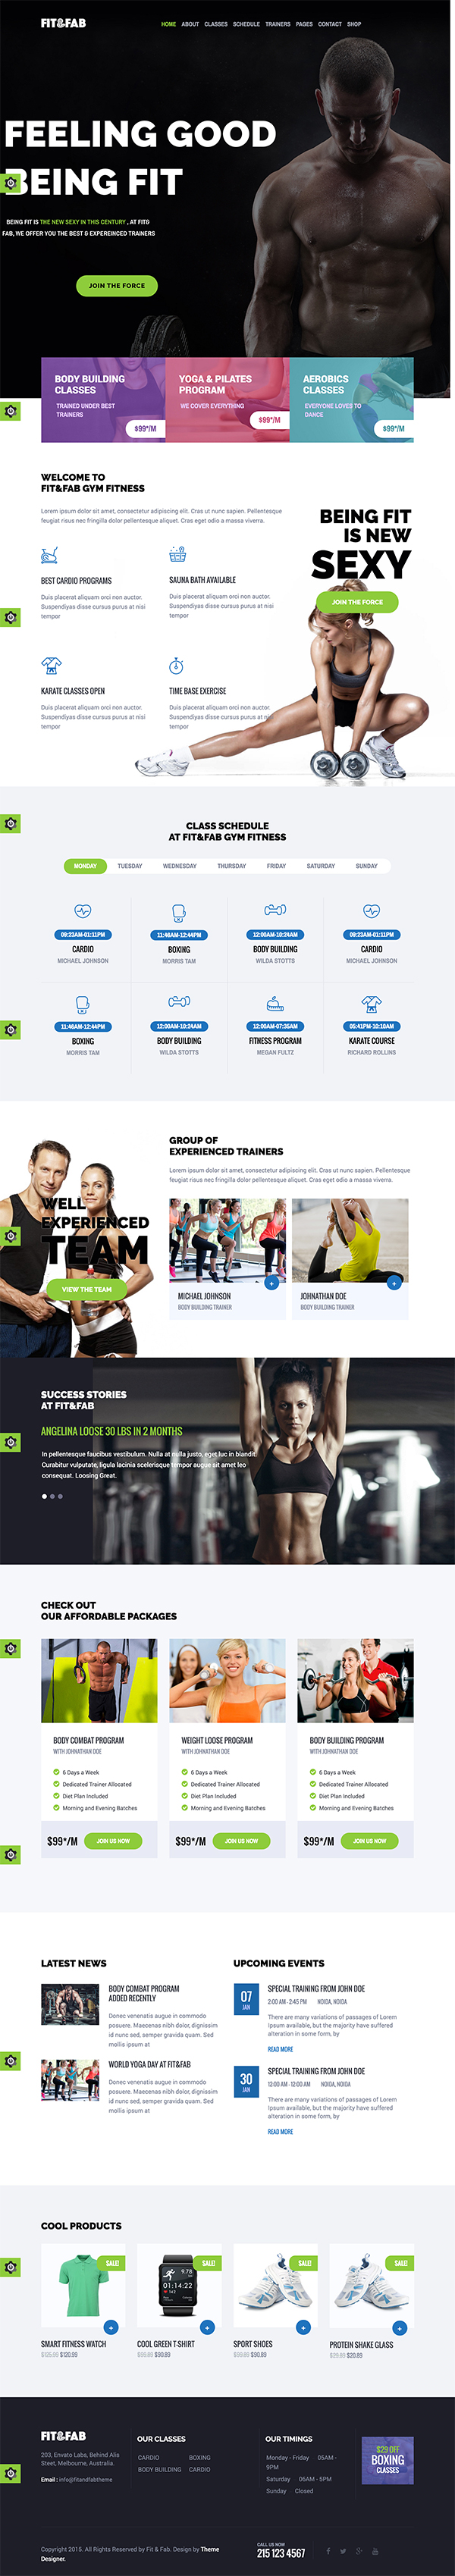 07 Fit & Fab - Aerobic, Gym and Fitness WordPress Theme